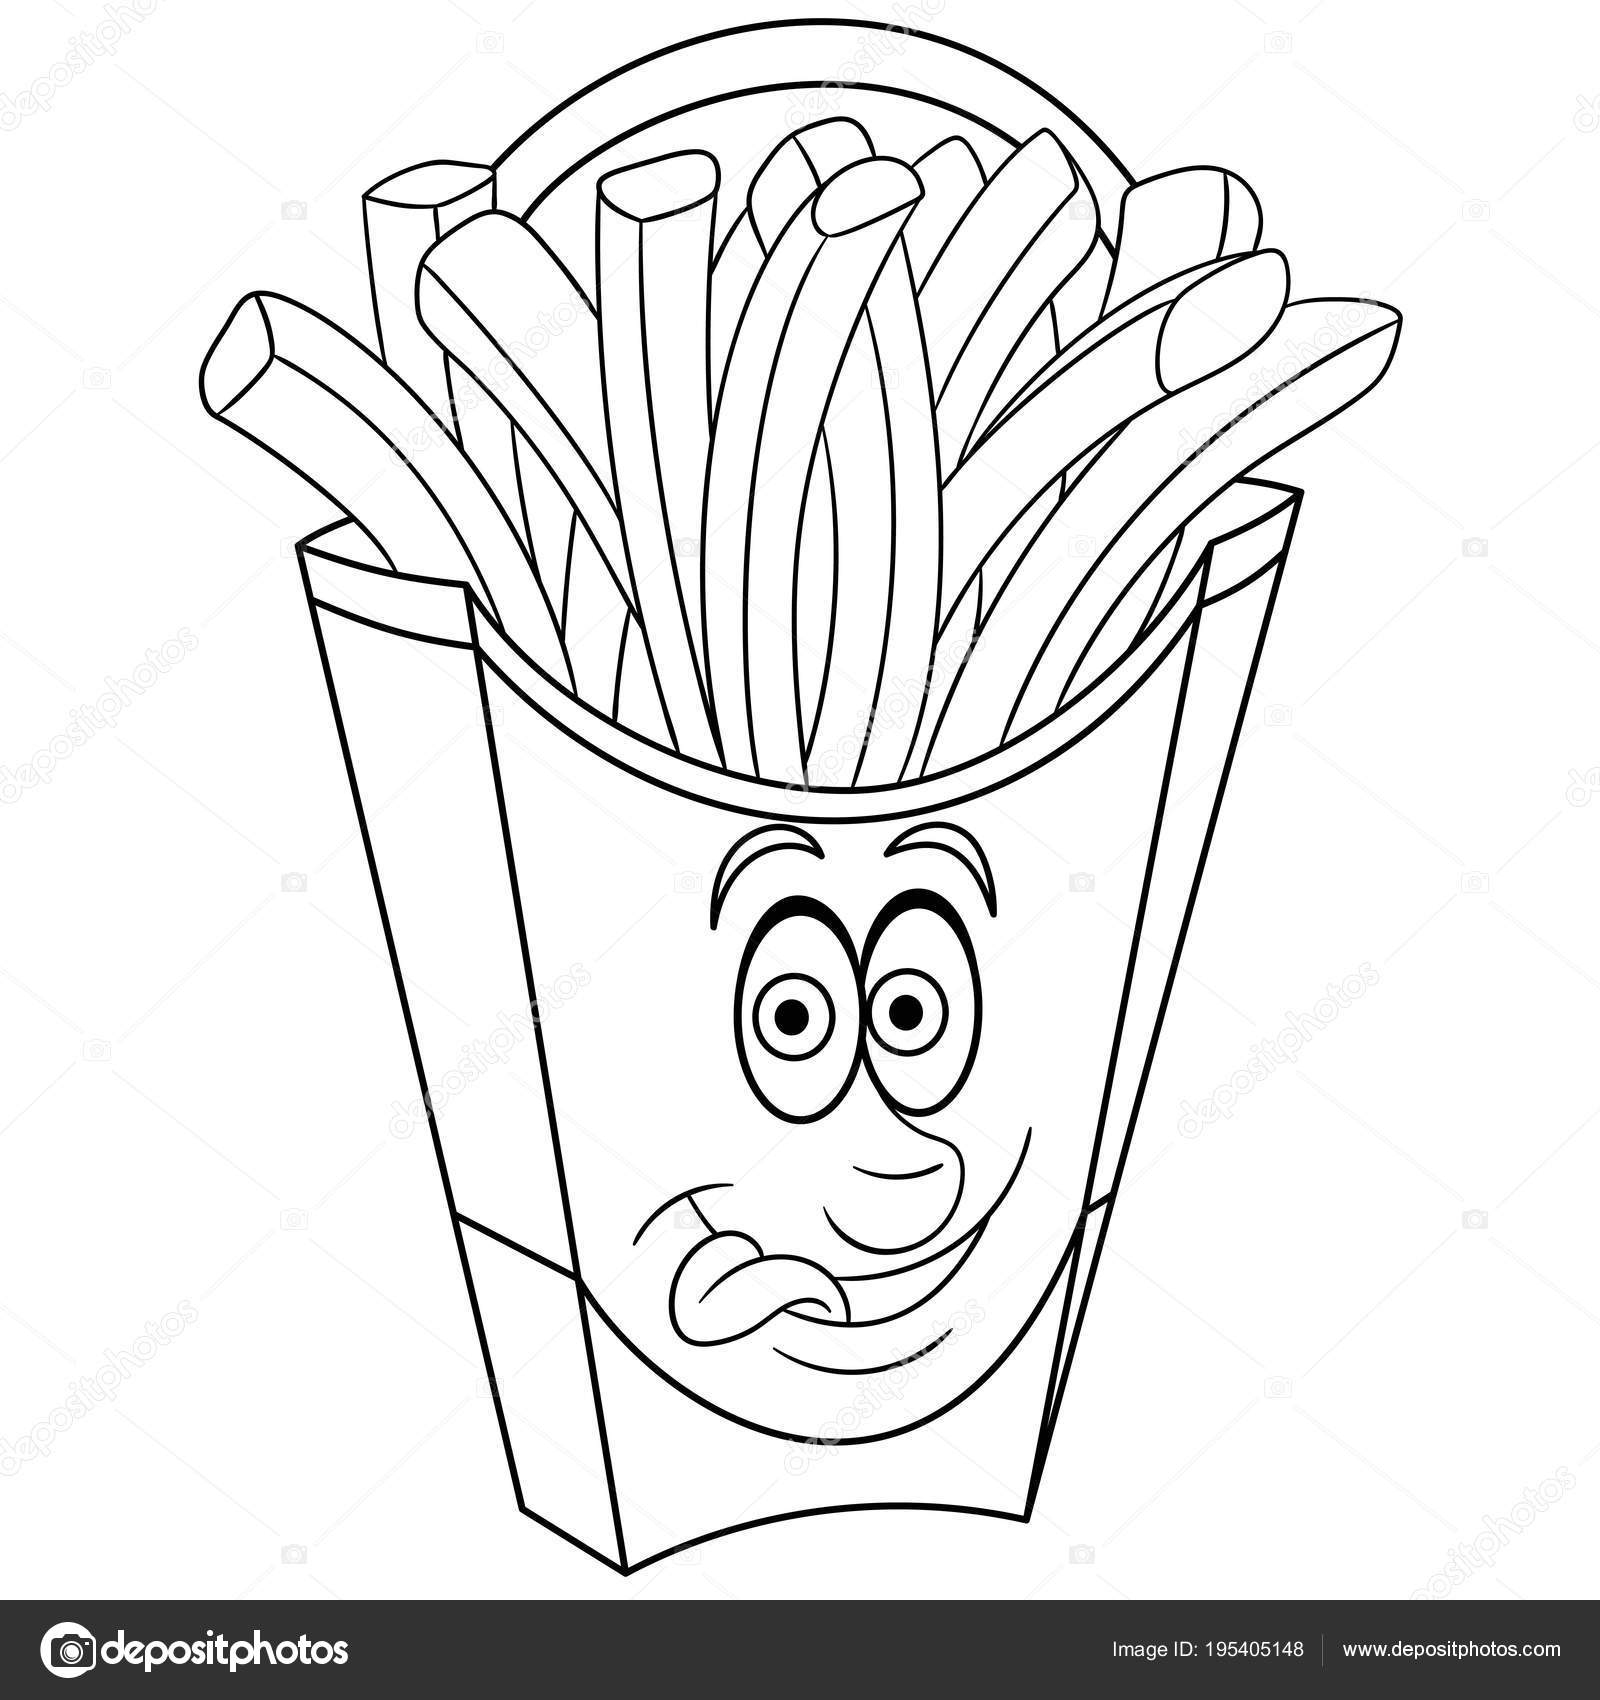 - Images: French Fries Coloring Page Coloring Book Coloring Page